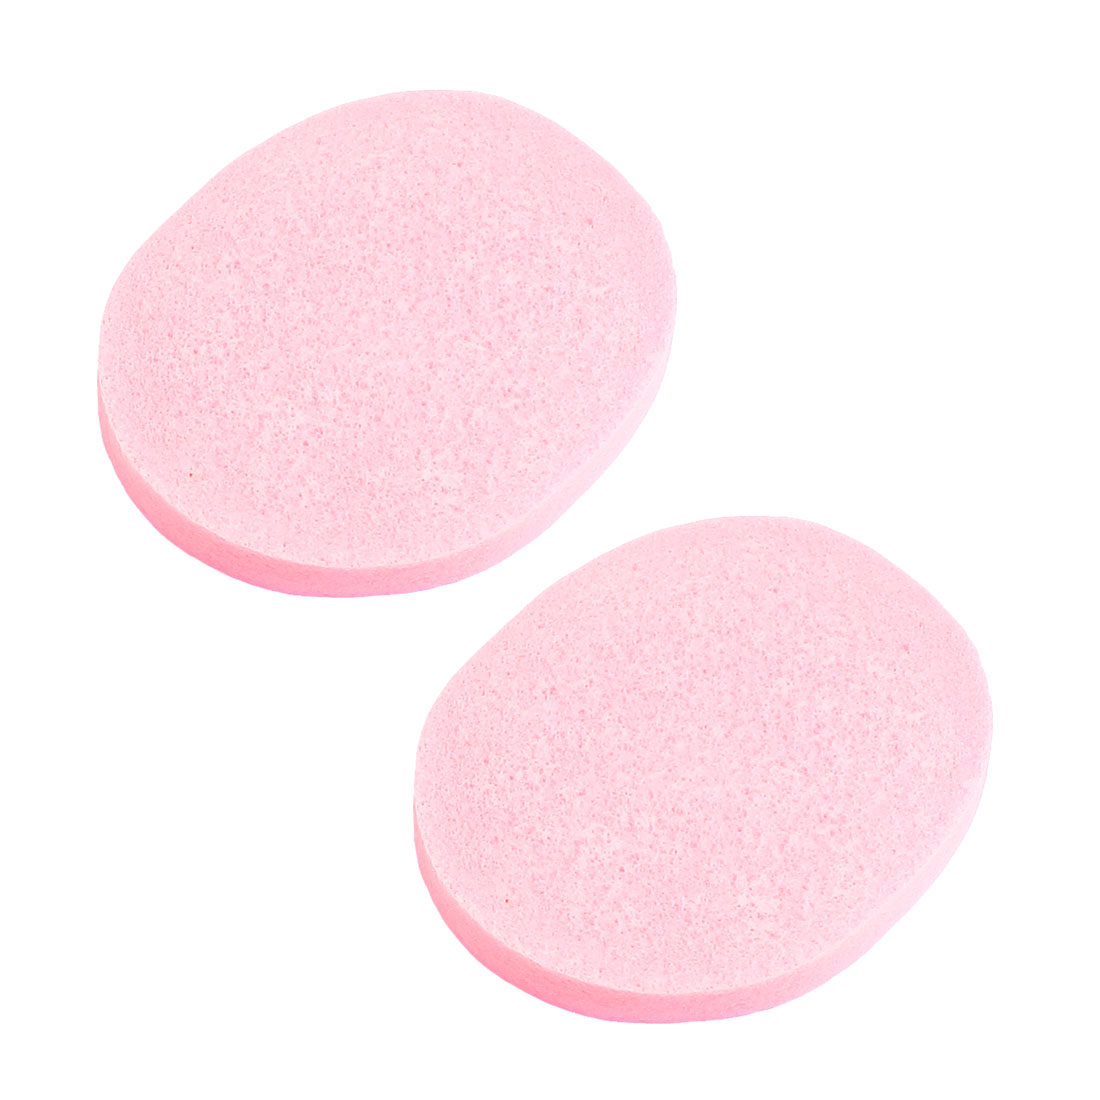 2 Pcs Cosmetic Oval Pink Sponge Facial Washing Cleansing Pads